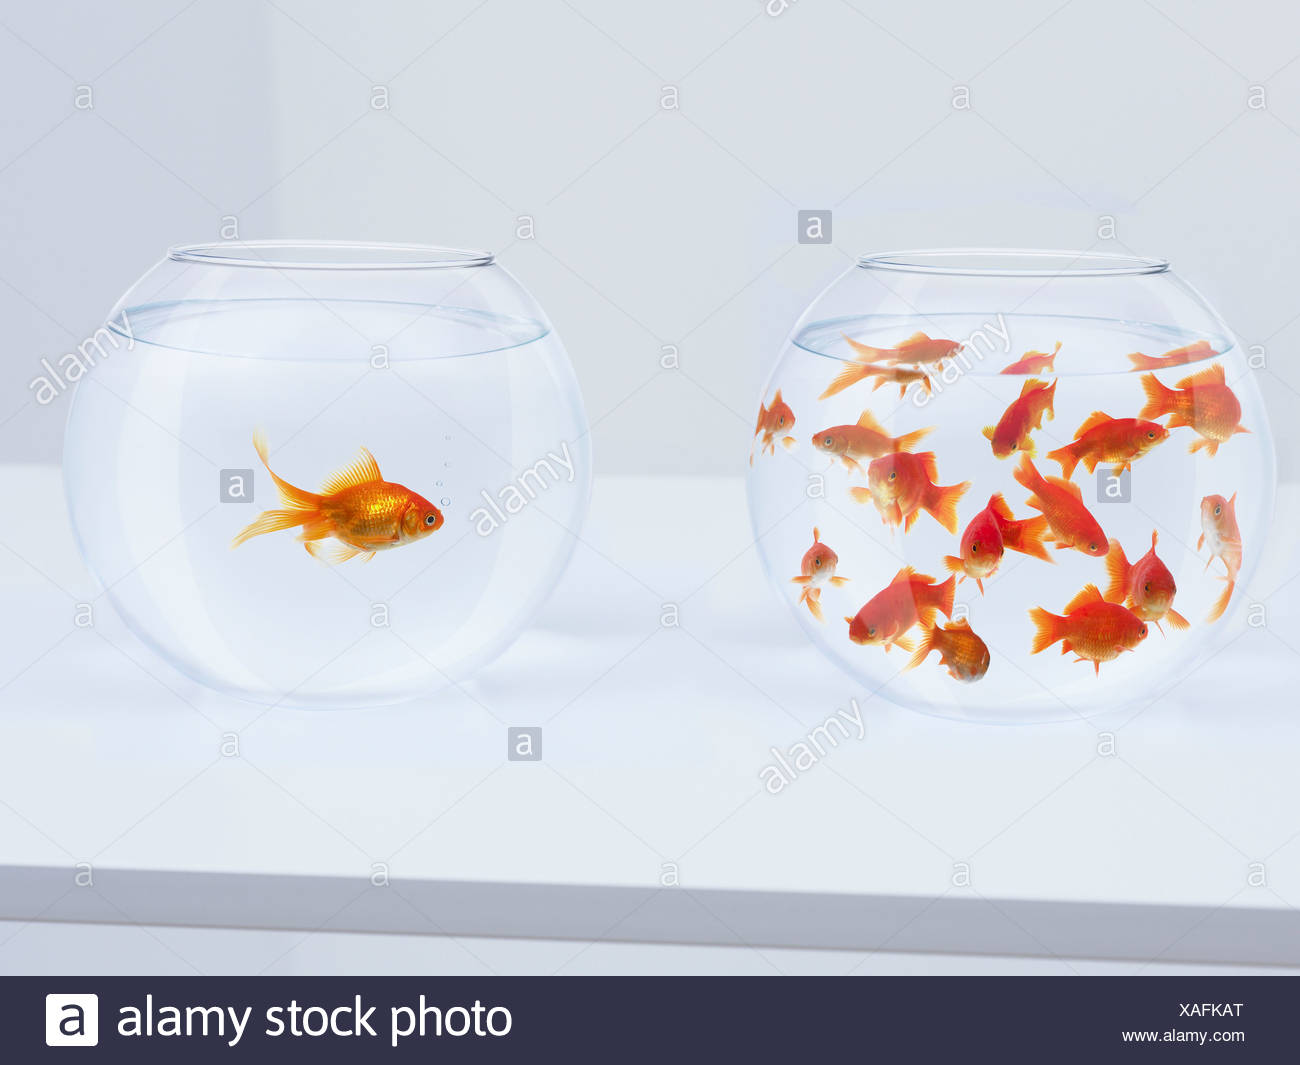 Contrast of  many goldfish in fishbowl and solitary goldfish in opposite fishbowl - Stock Image